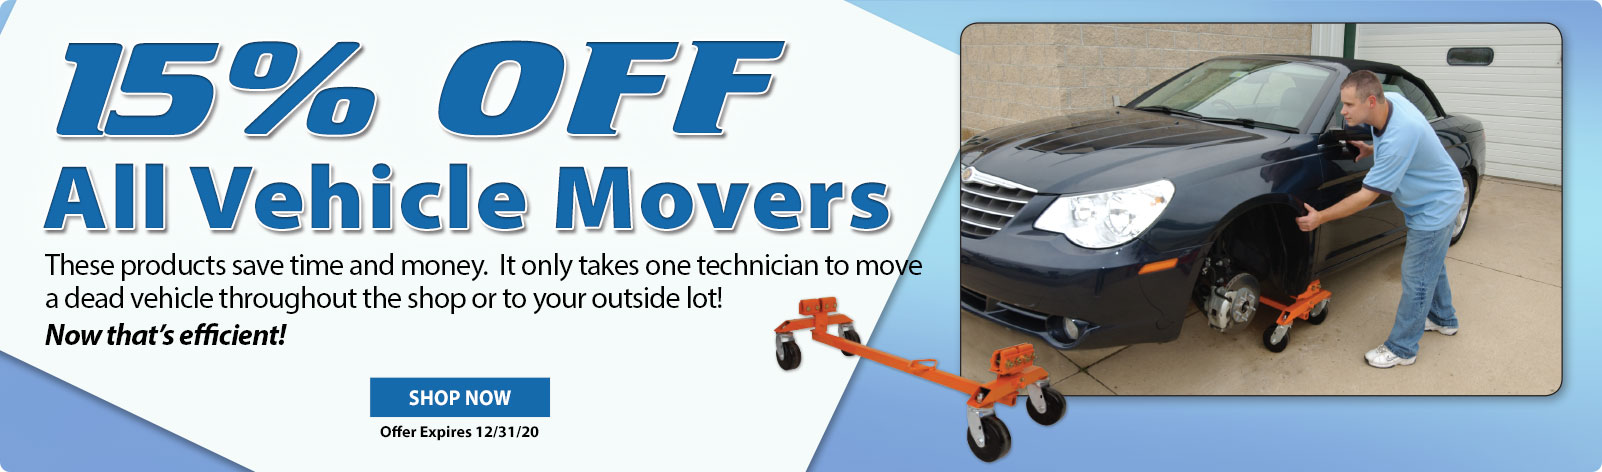 Vehicle Movers